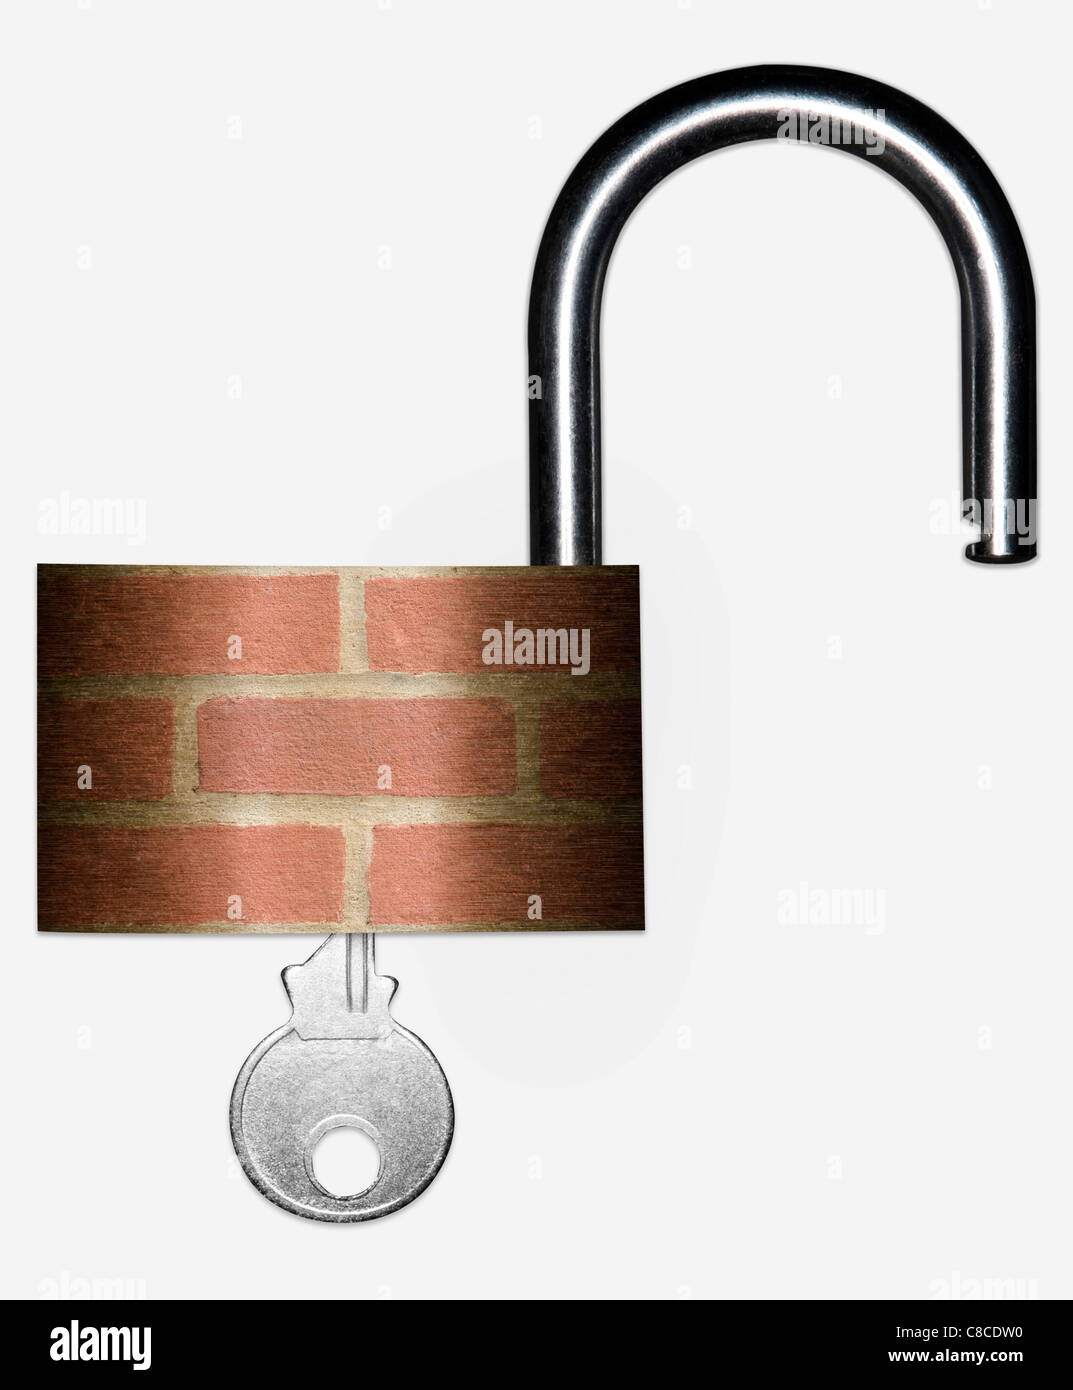 Unlocked padlock with a brick wall superimposed on the body, signifying Home Security Issues. - Stock Image